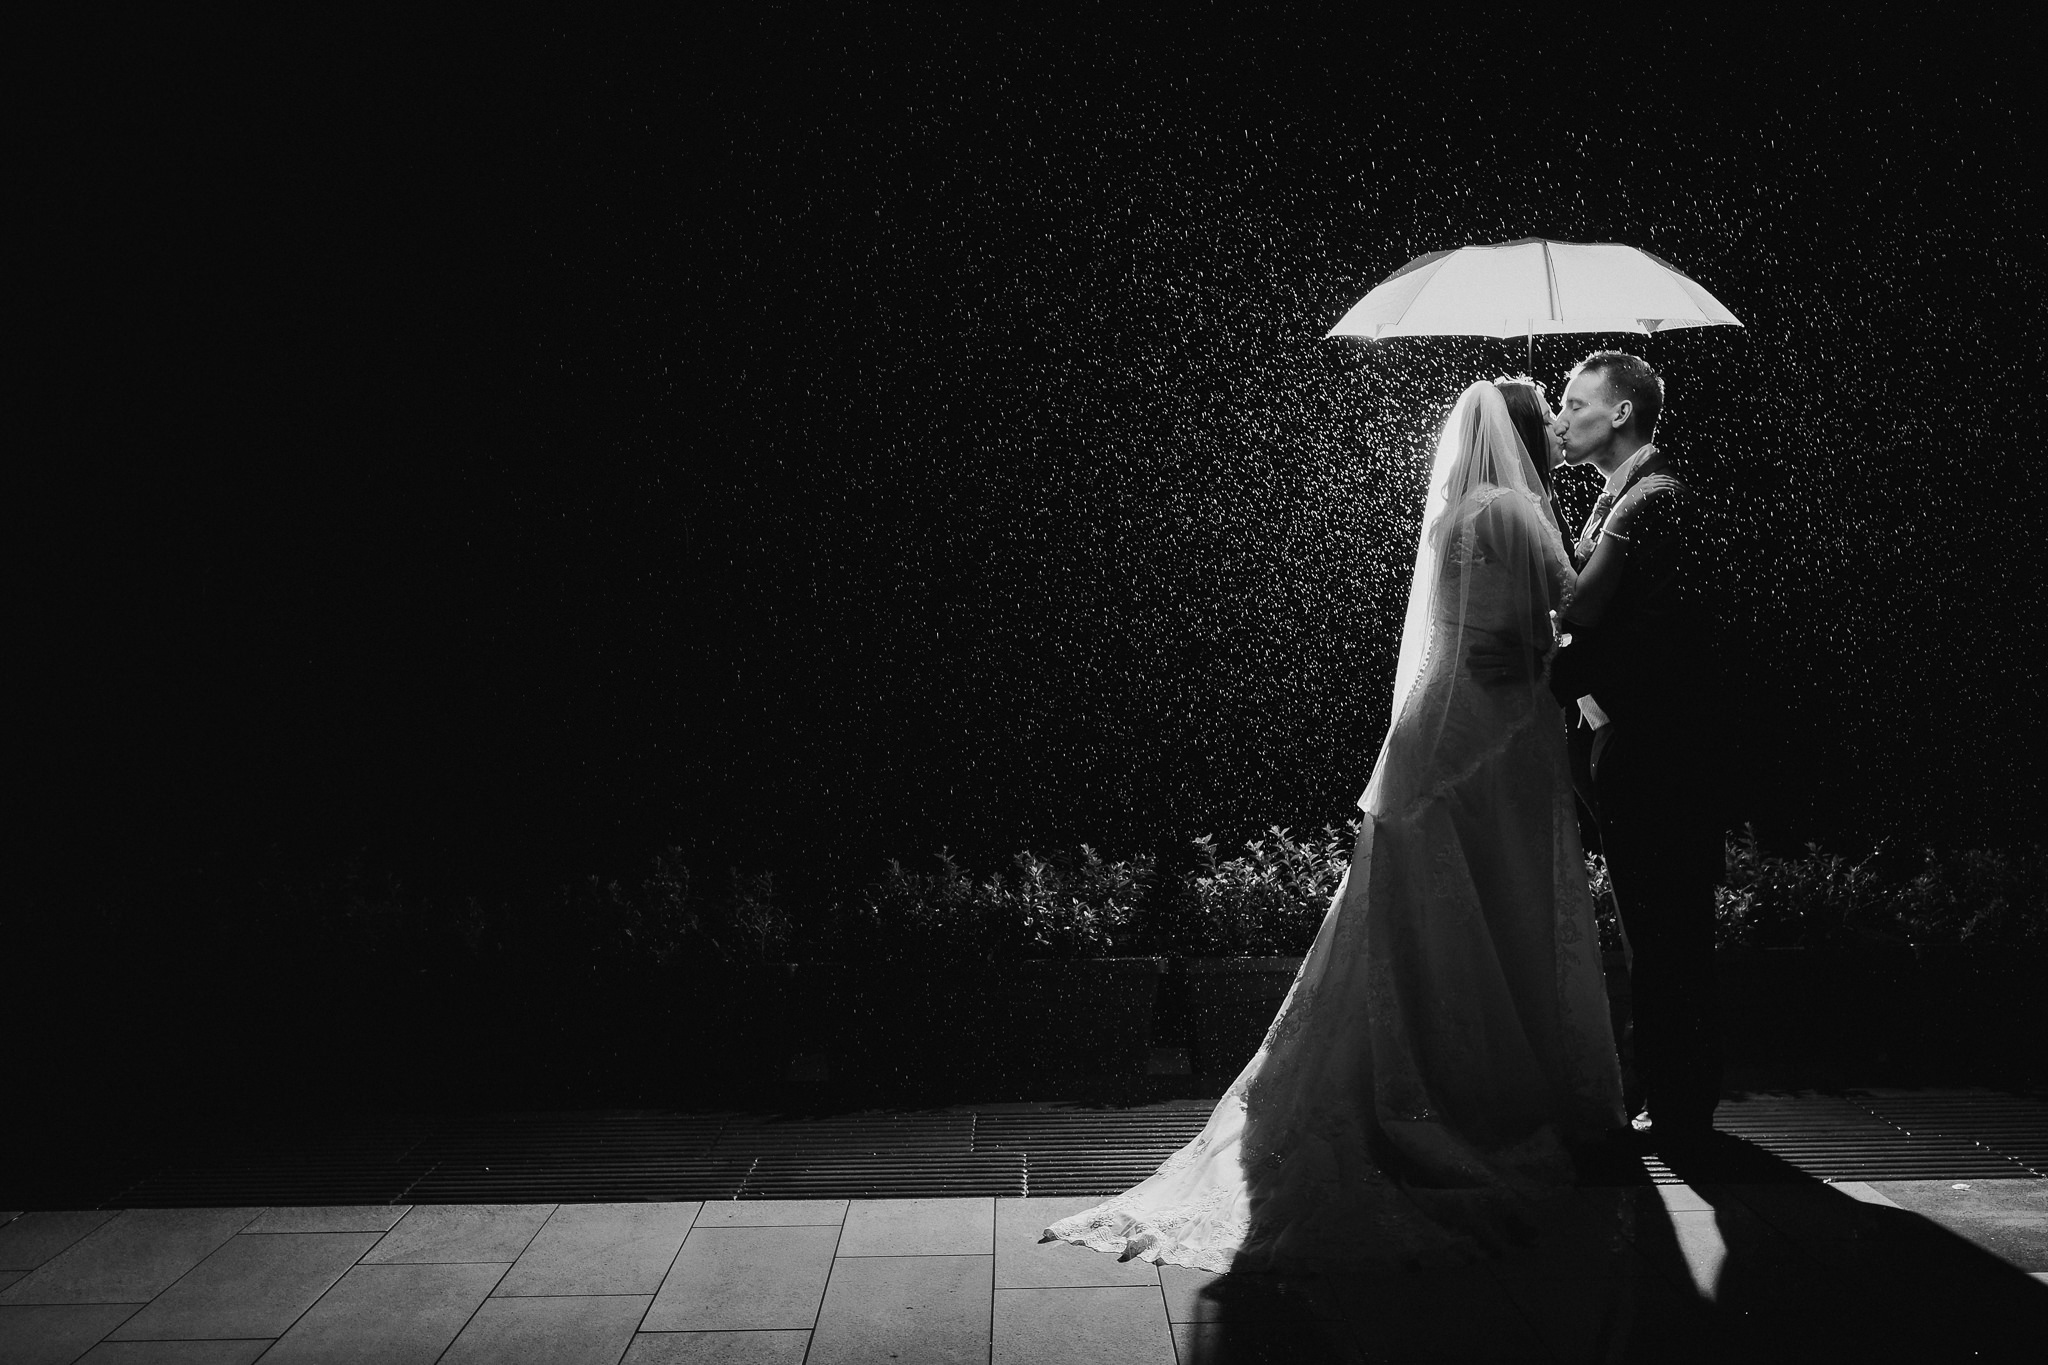 Black and white photo of the bride and groom in the rain under an umbrella